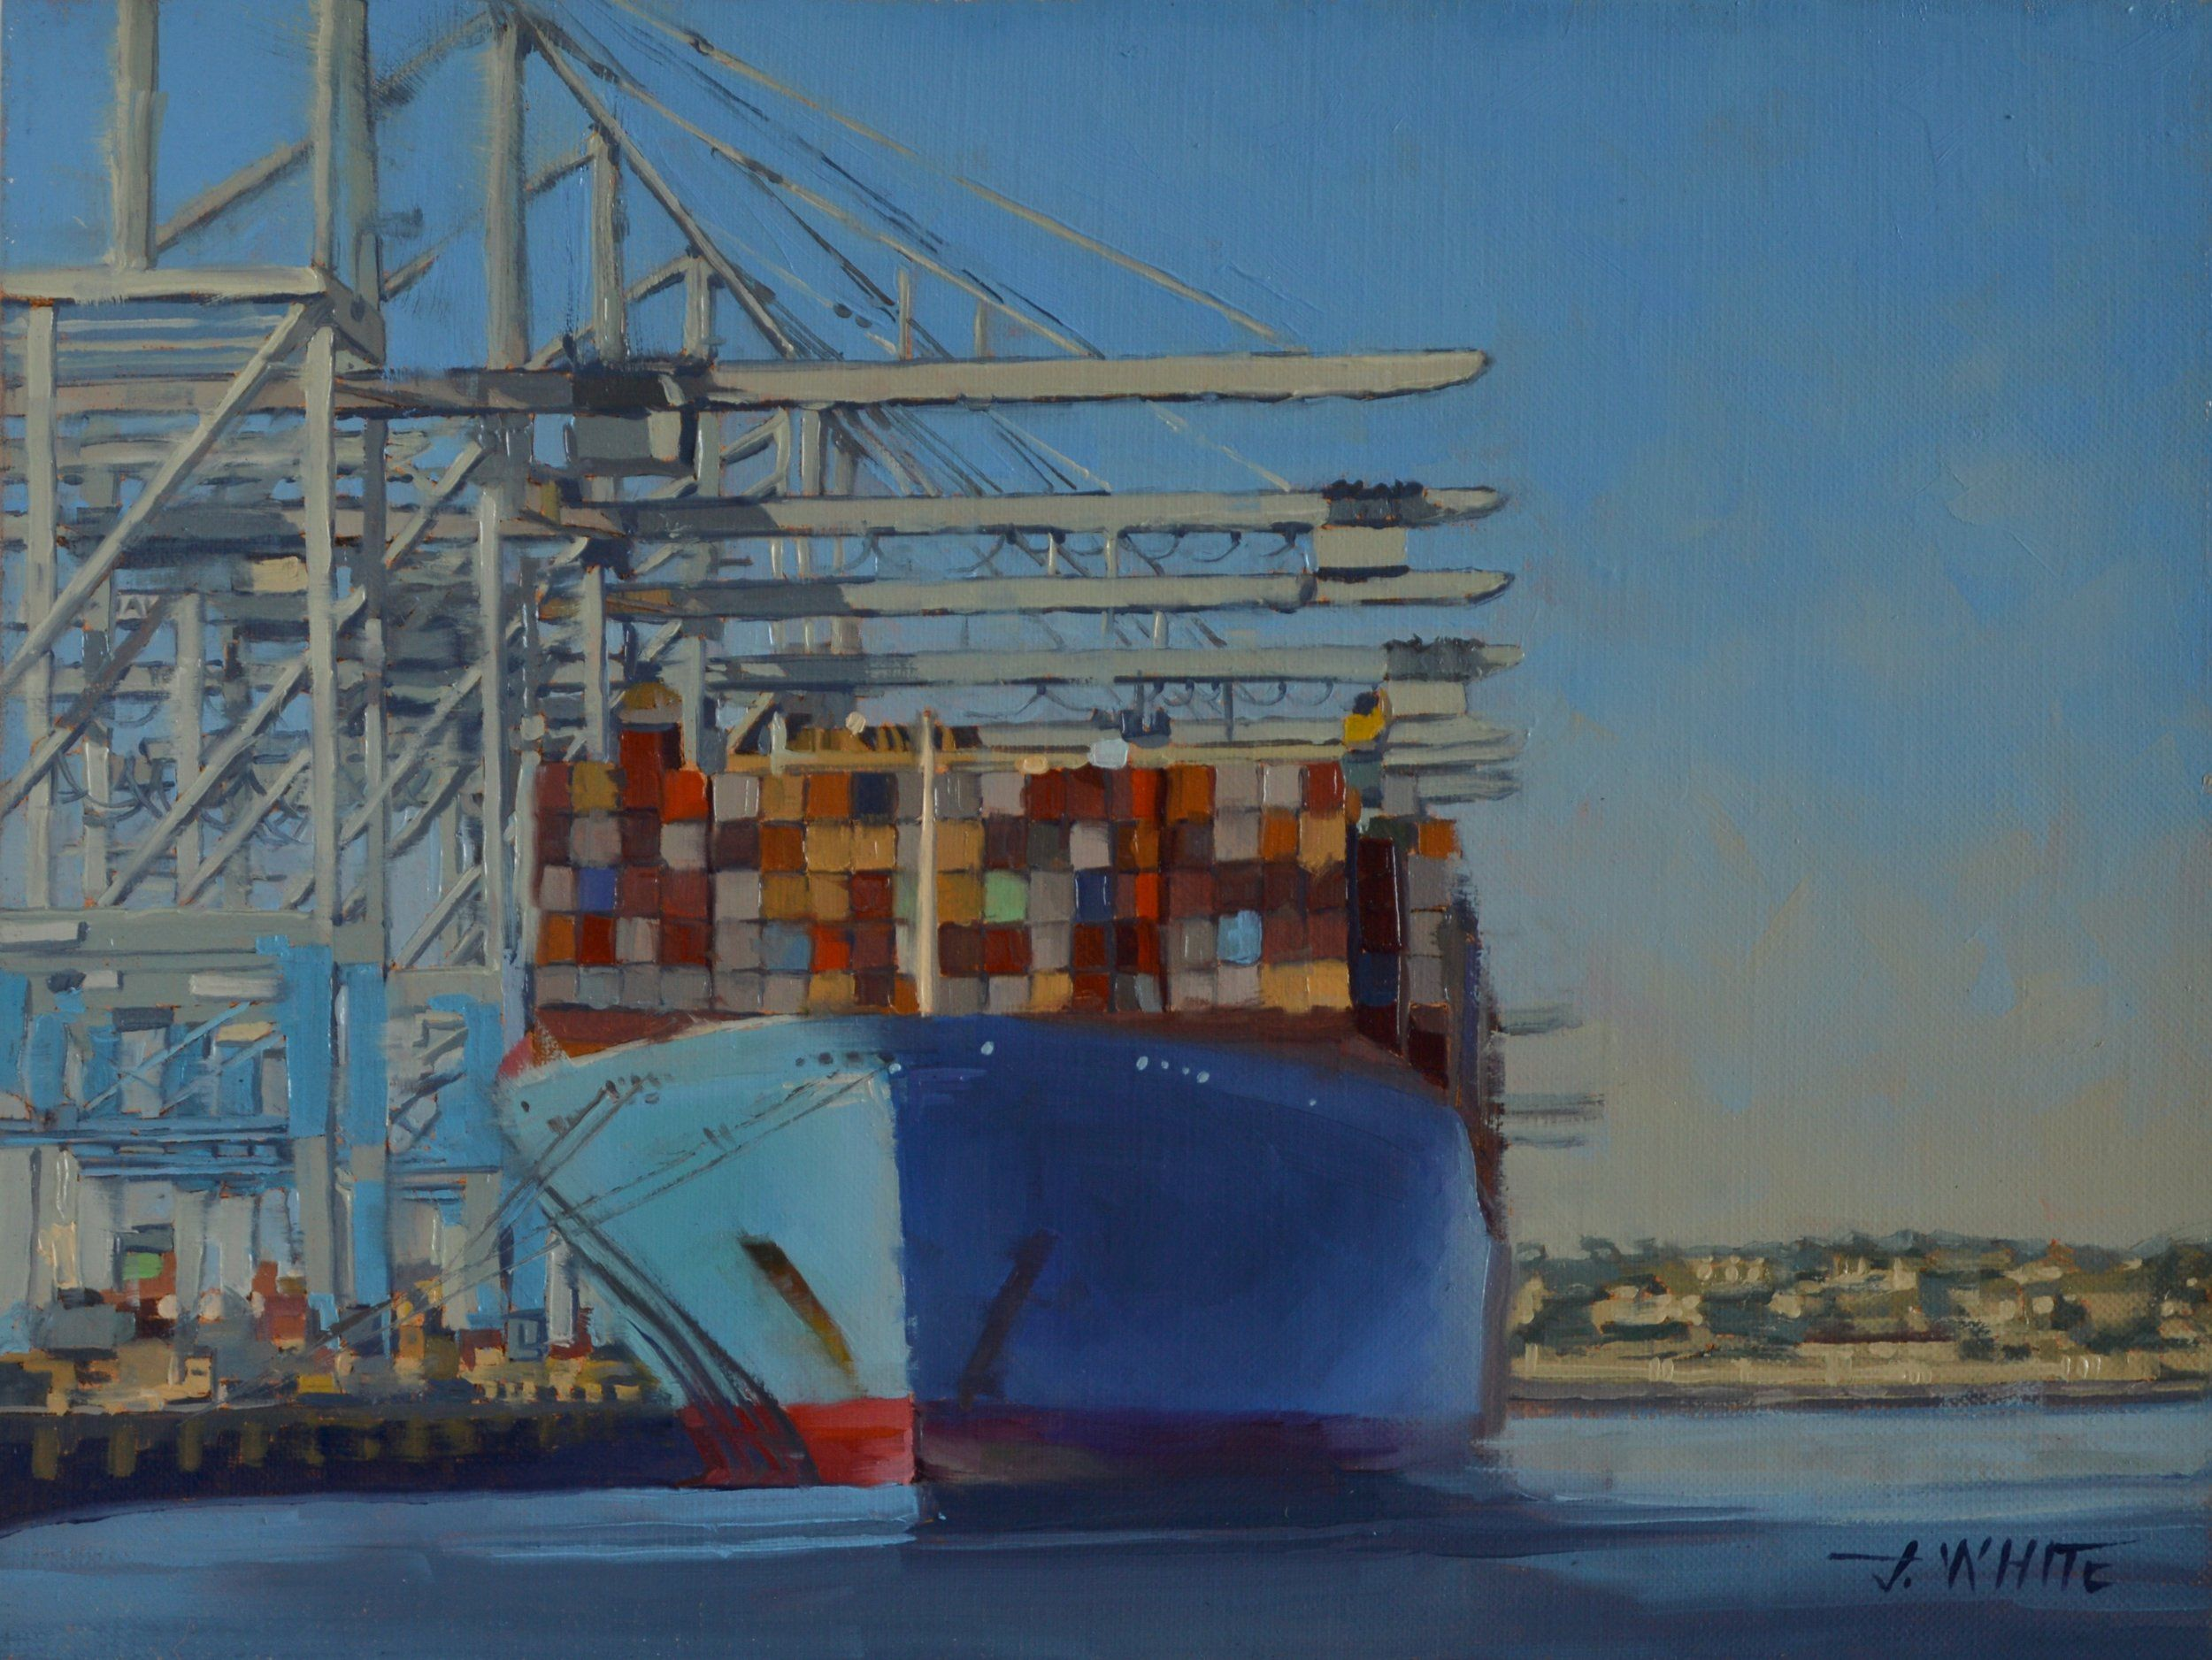 "For this piece, I wasn't able to follow my normal process by starting with a study because I wasn't allowed to paint on site here at the port. This is a scene of a container ship at the busy Port of Long Beach in southern California. It's fenced off and is very high security. All I had time to do was snap some photographs before being chased off by homeland security. I was happy with this one shot I was able to get and paint from.  This is a 12""x 16"" original oil painting and comes in a gallery"